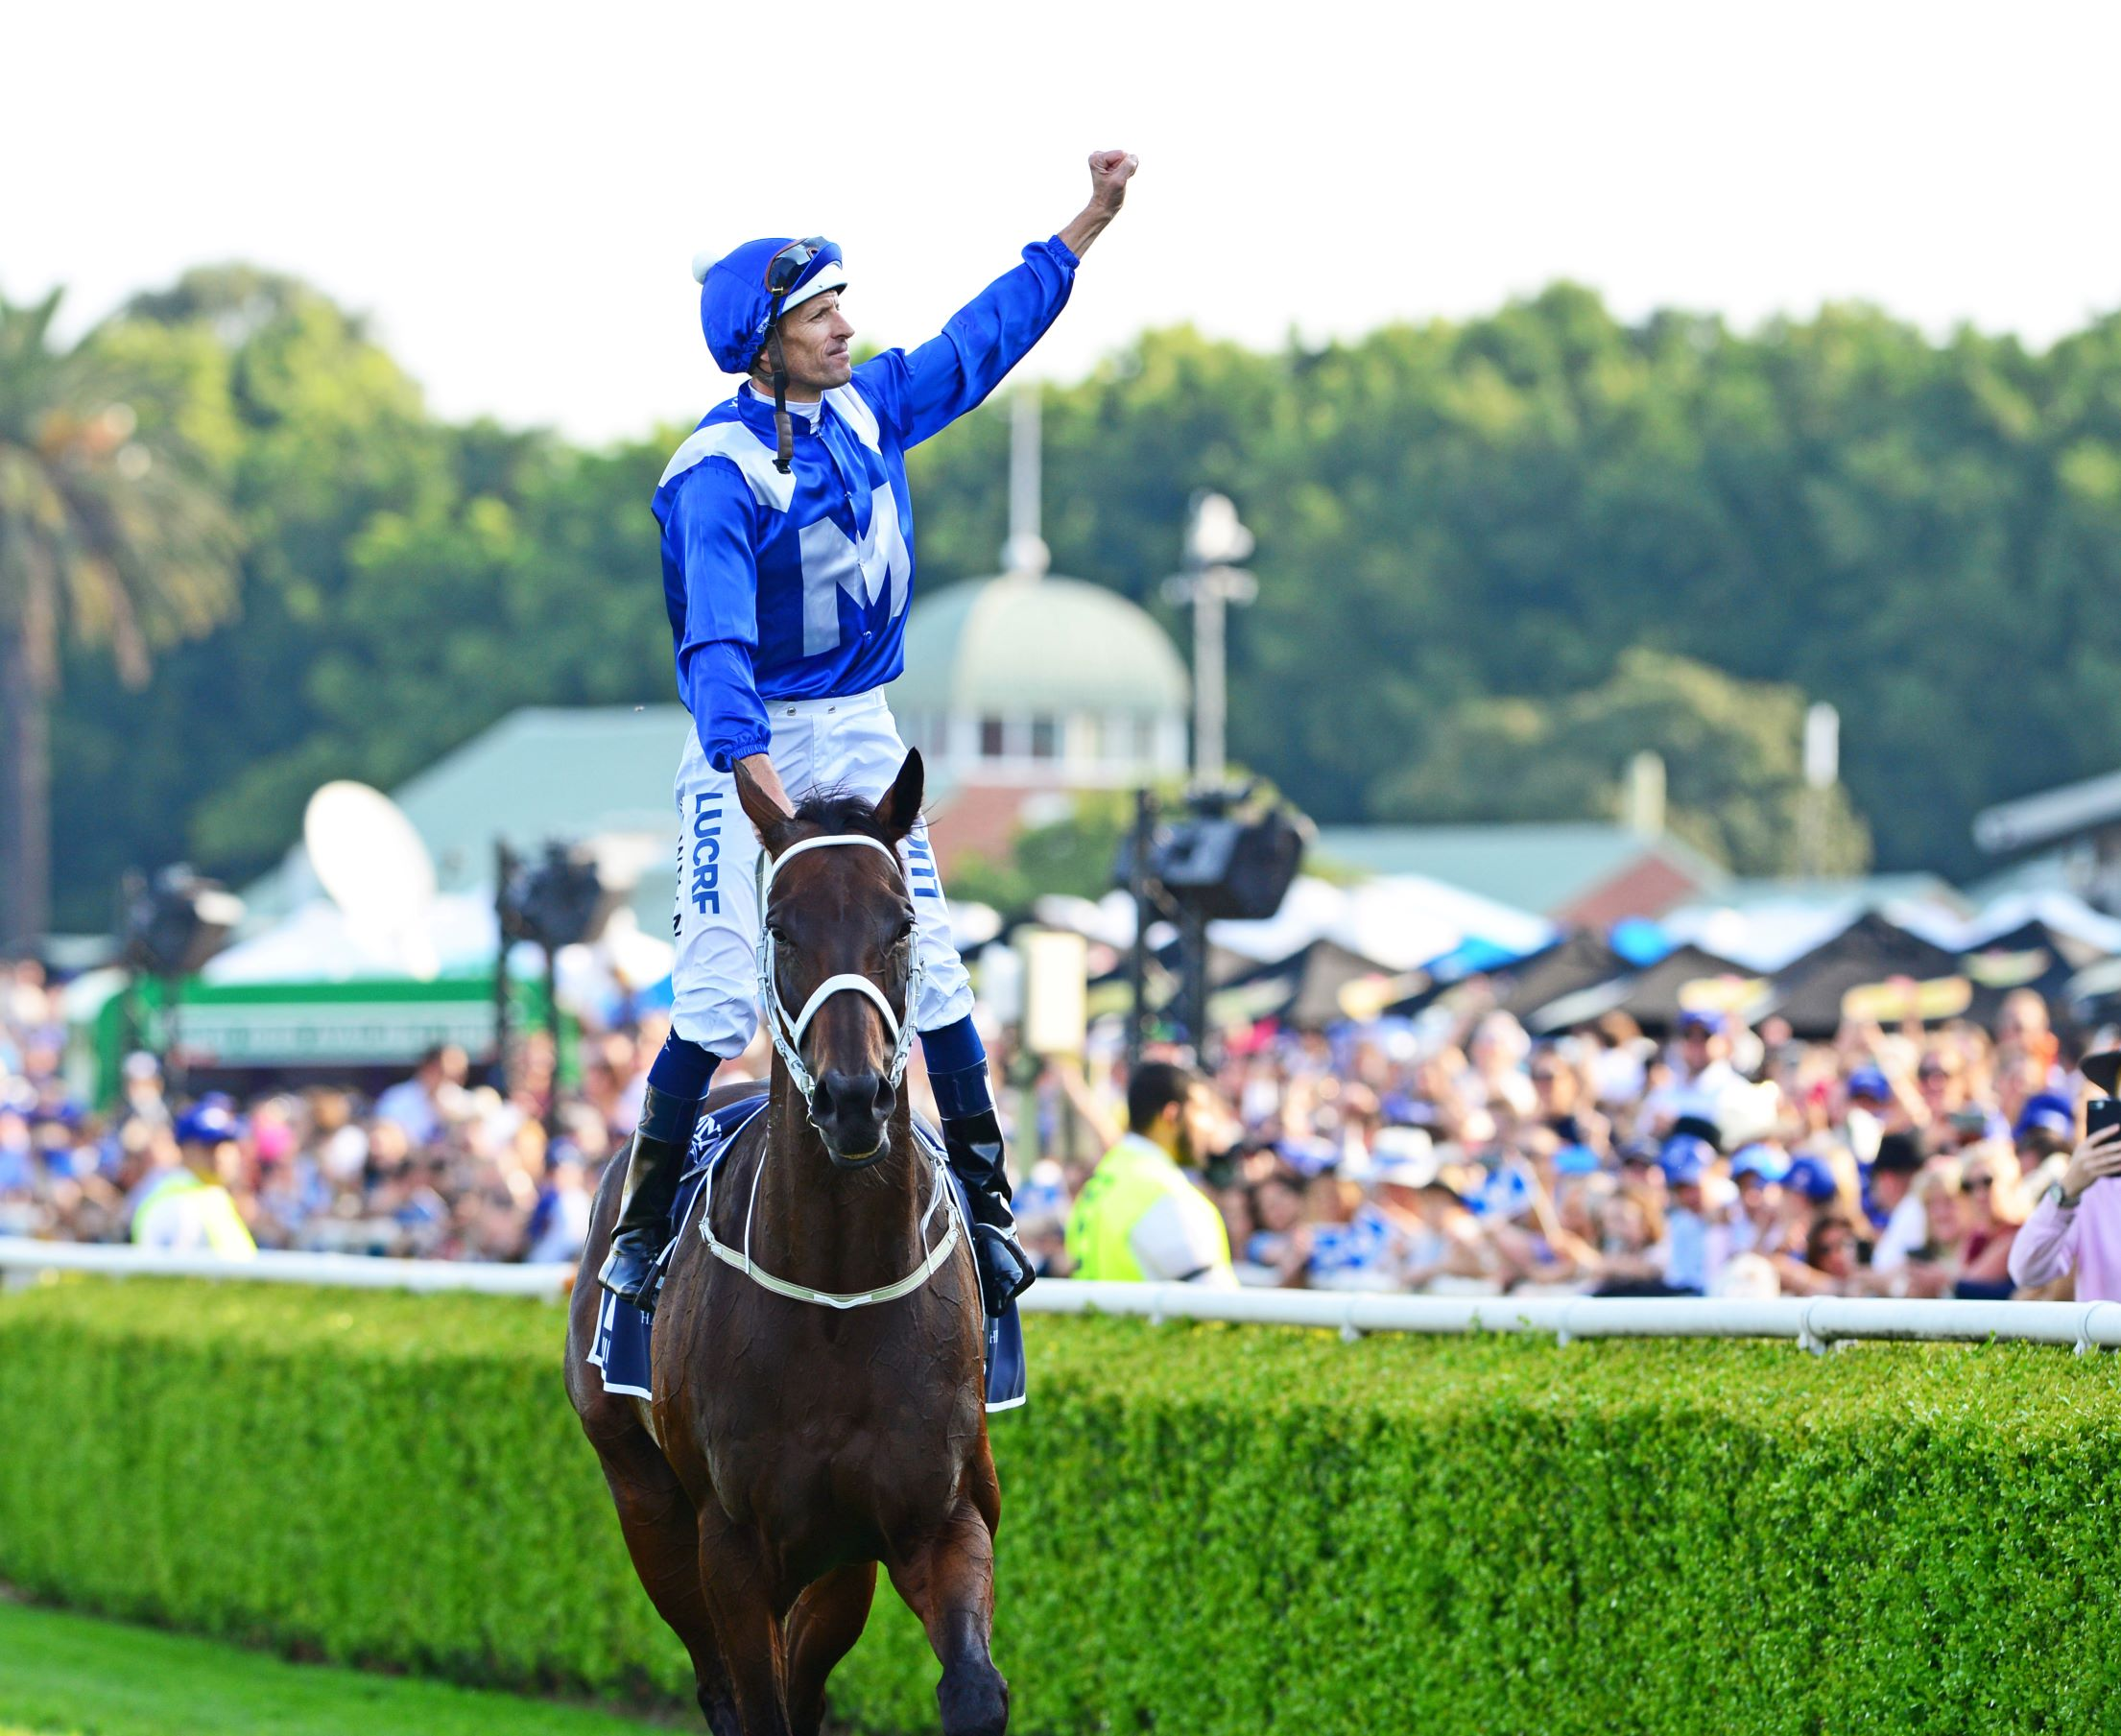 Winx and Hugh Bowman after winning the Queen Elizabeth Stakes